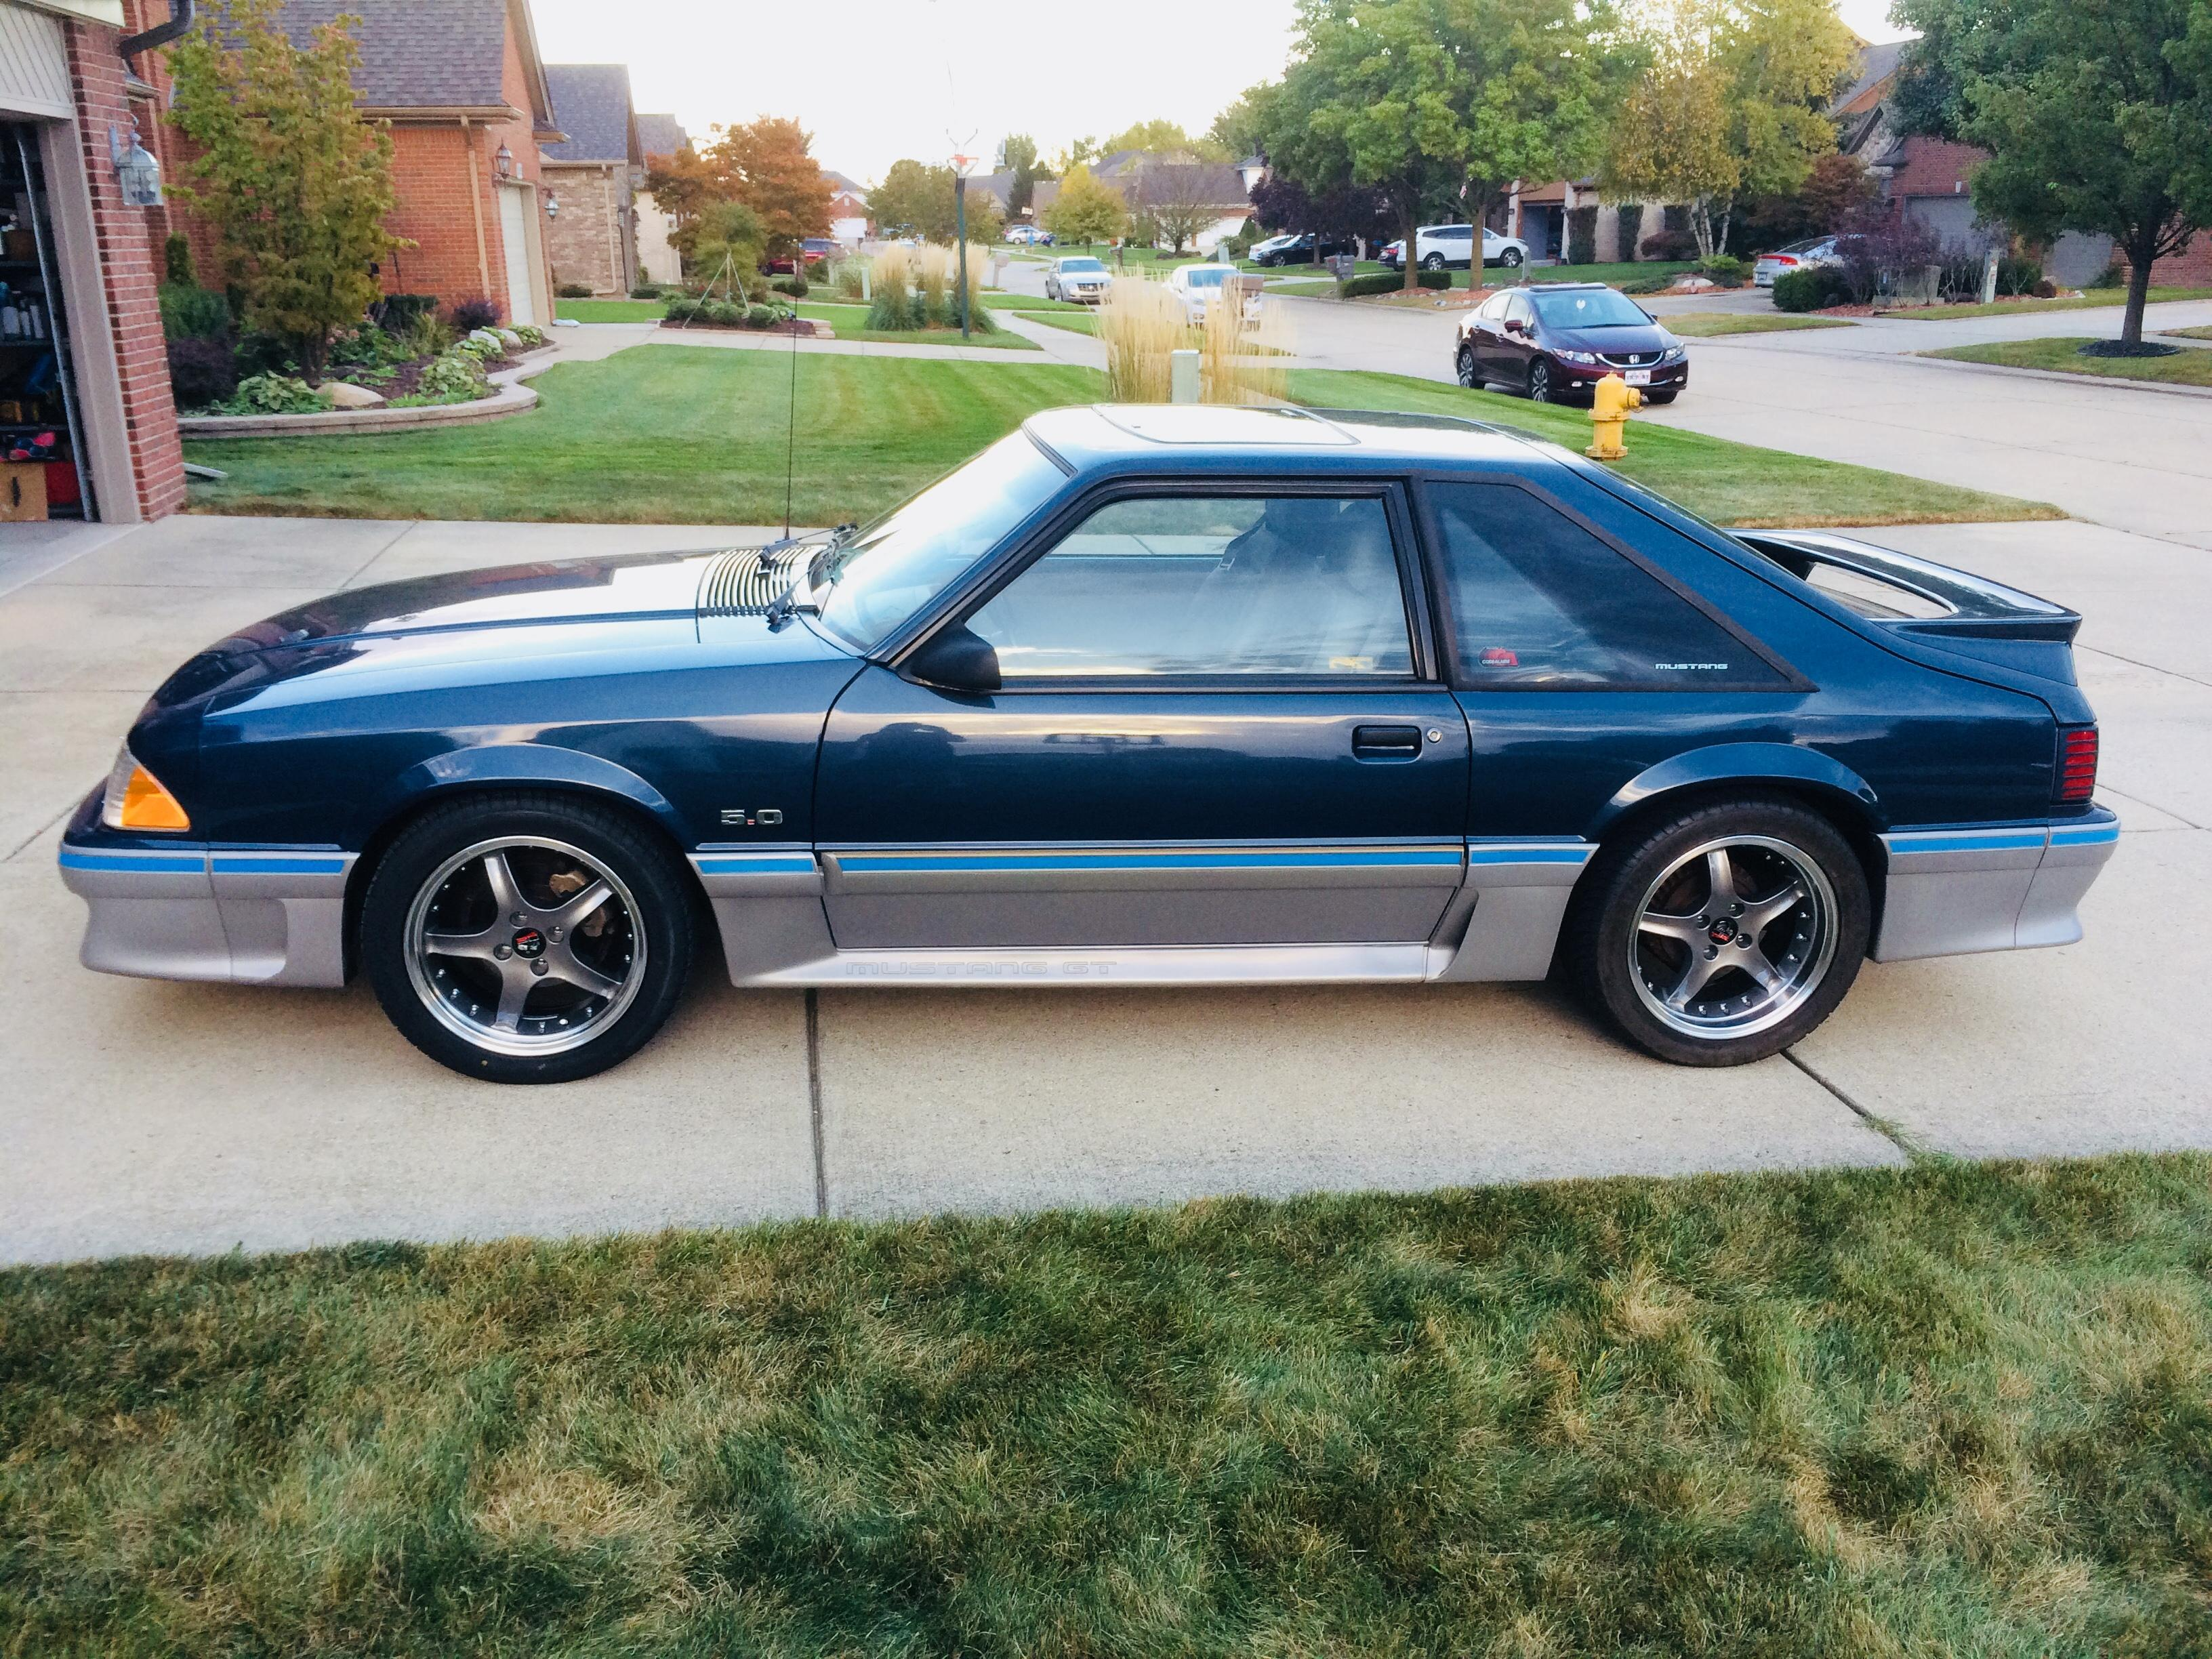 Purchased for my 87 mustang gt the fit and finish on these rims are awesome the rims run true with no vibration while driving